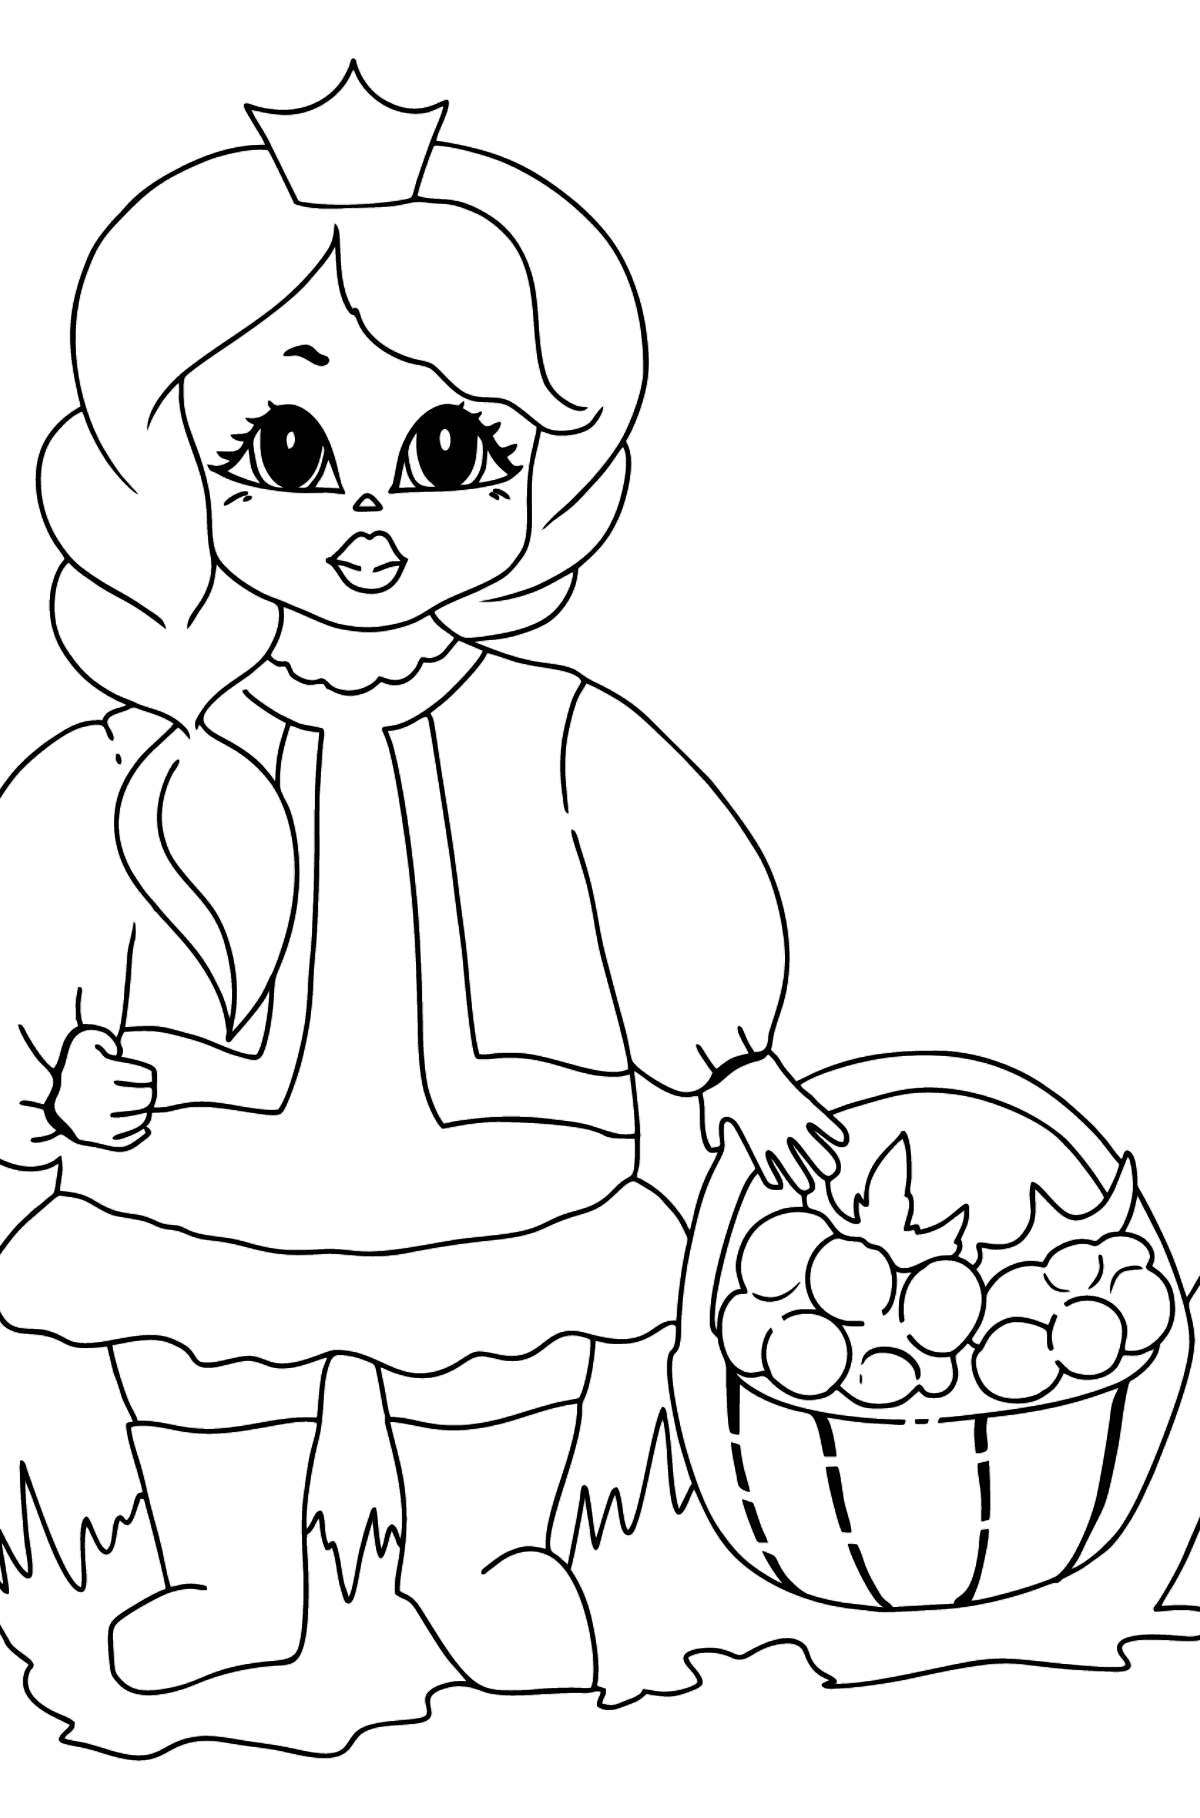 Coloring Page - A Princess with a Basket - Coloring Pages for Kids